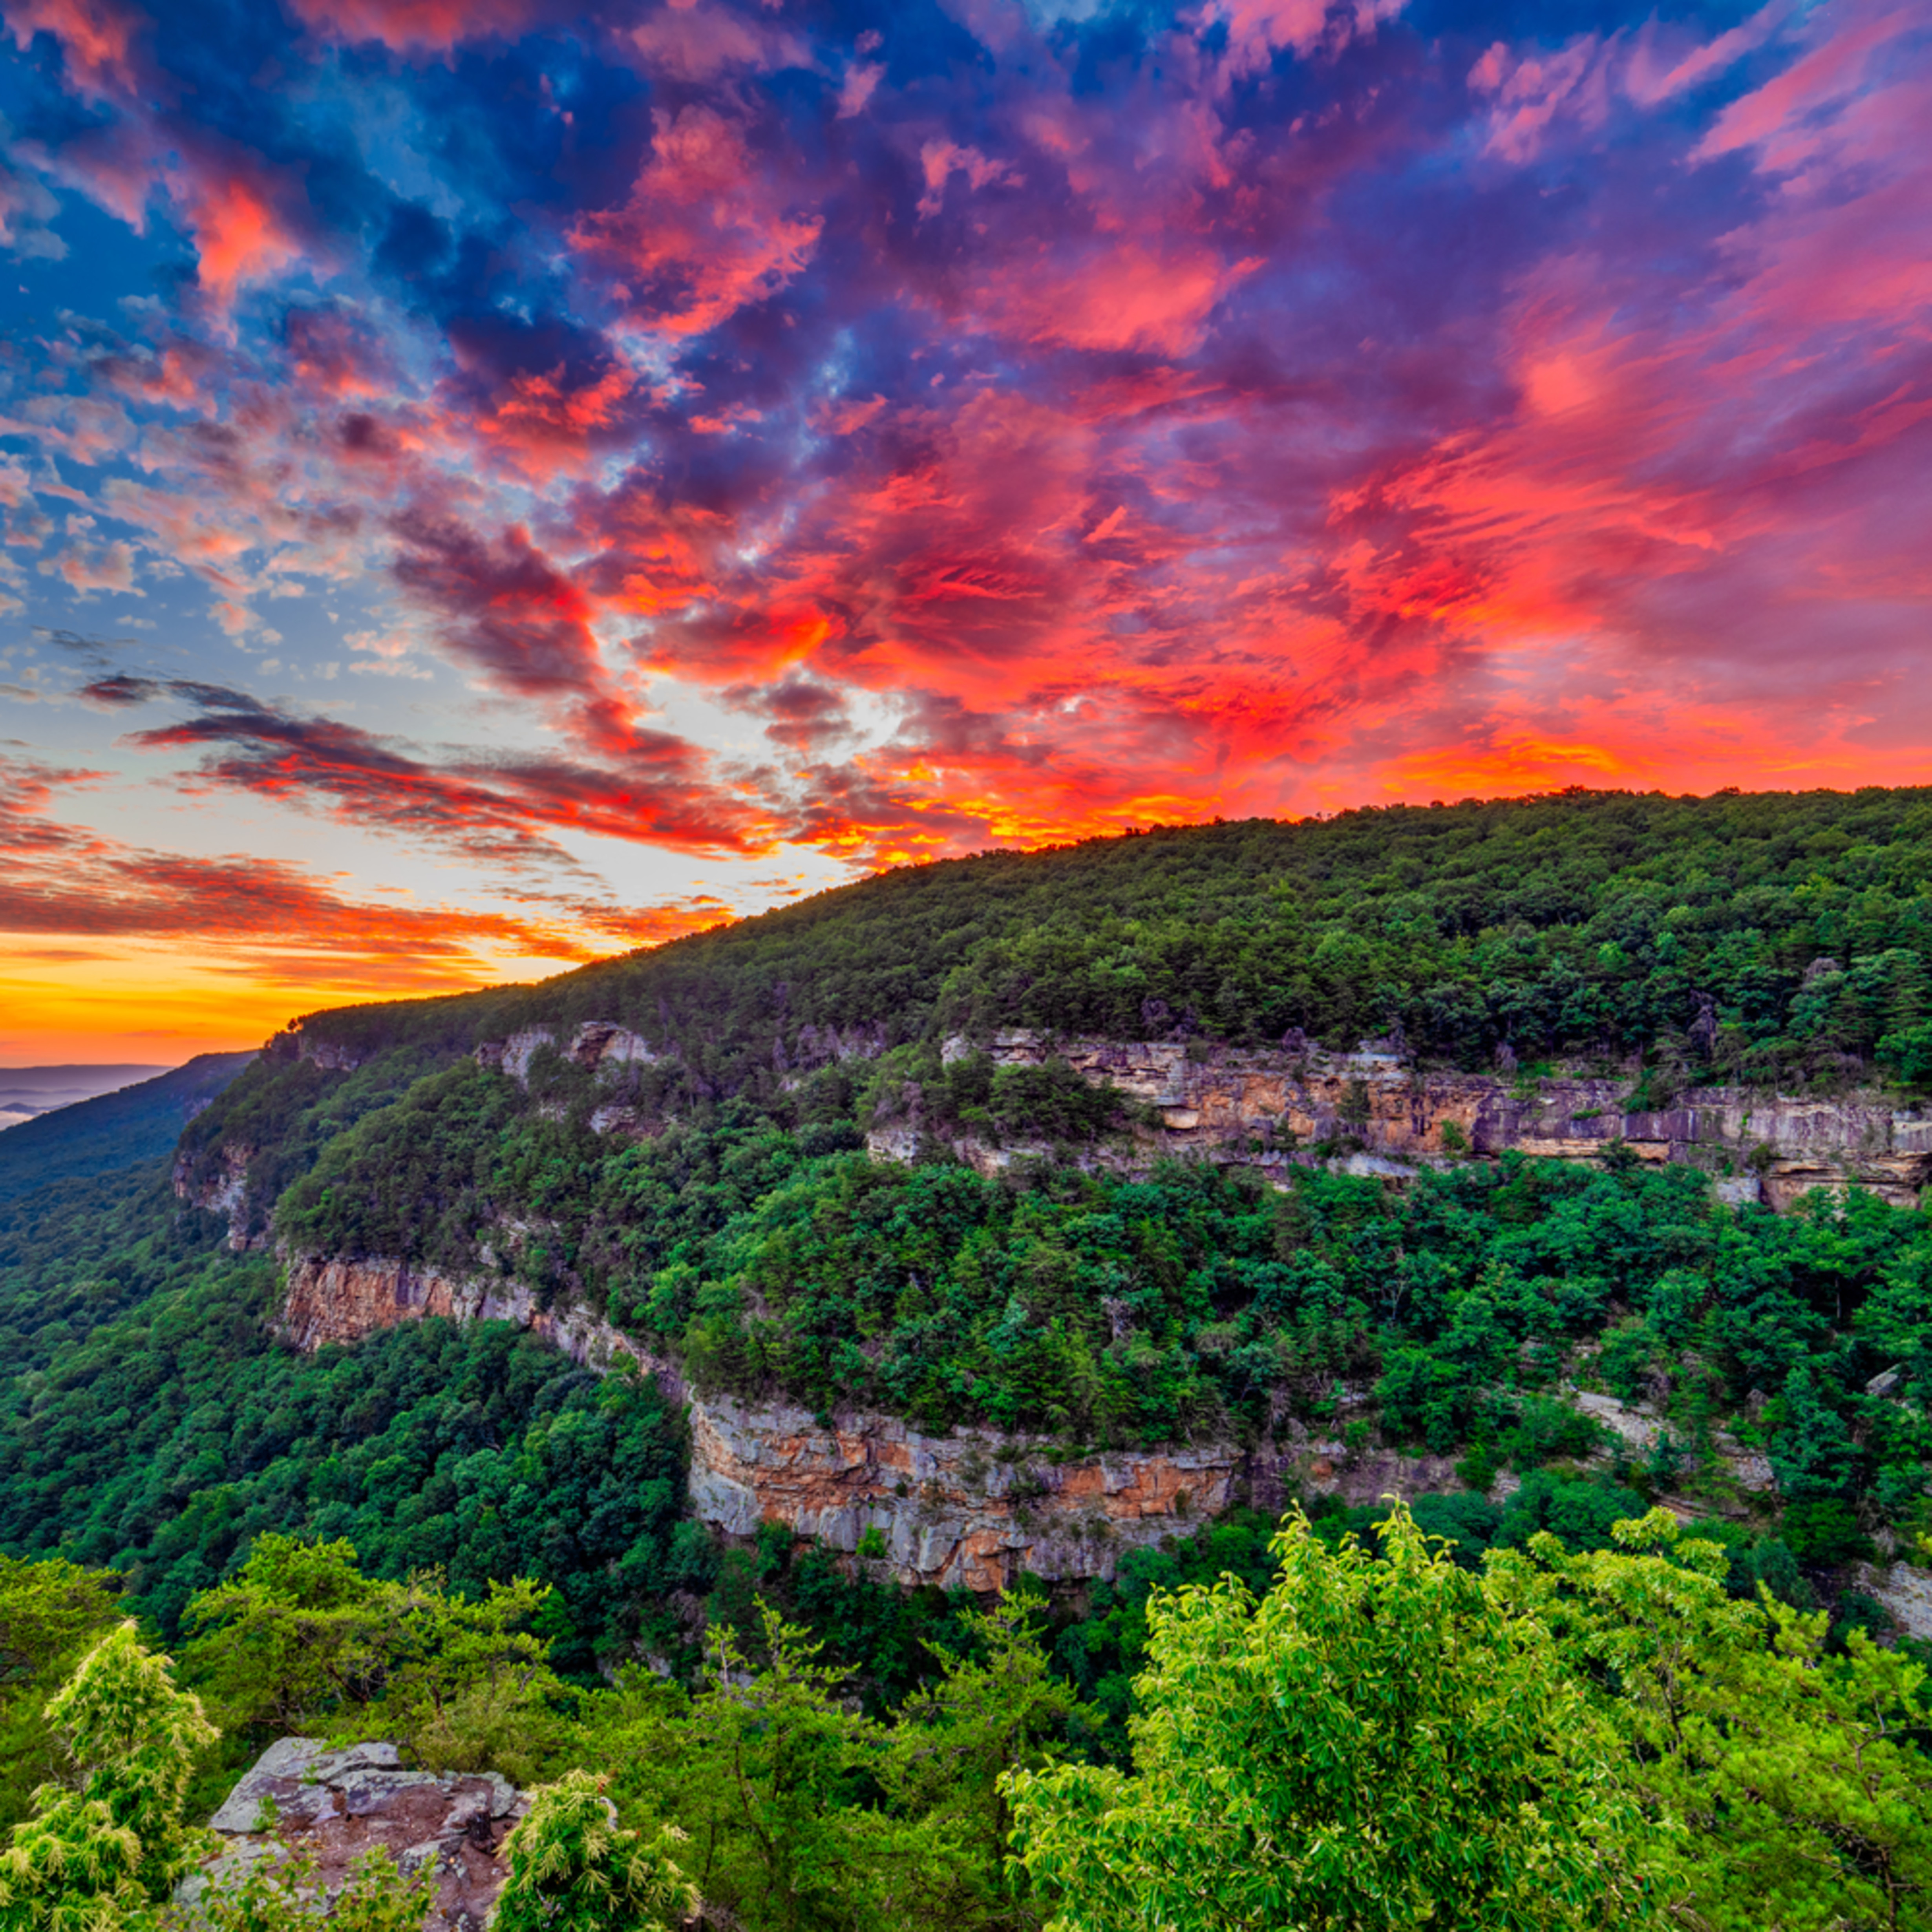 Andy crawford photography sand mountain sunrise cloudland canyon s1suqj